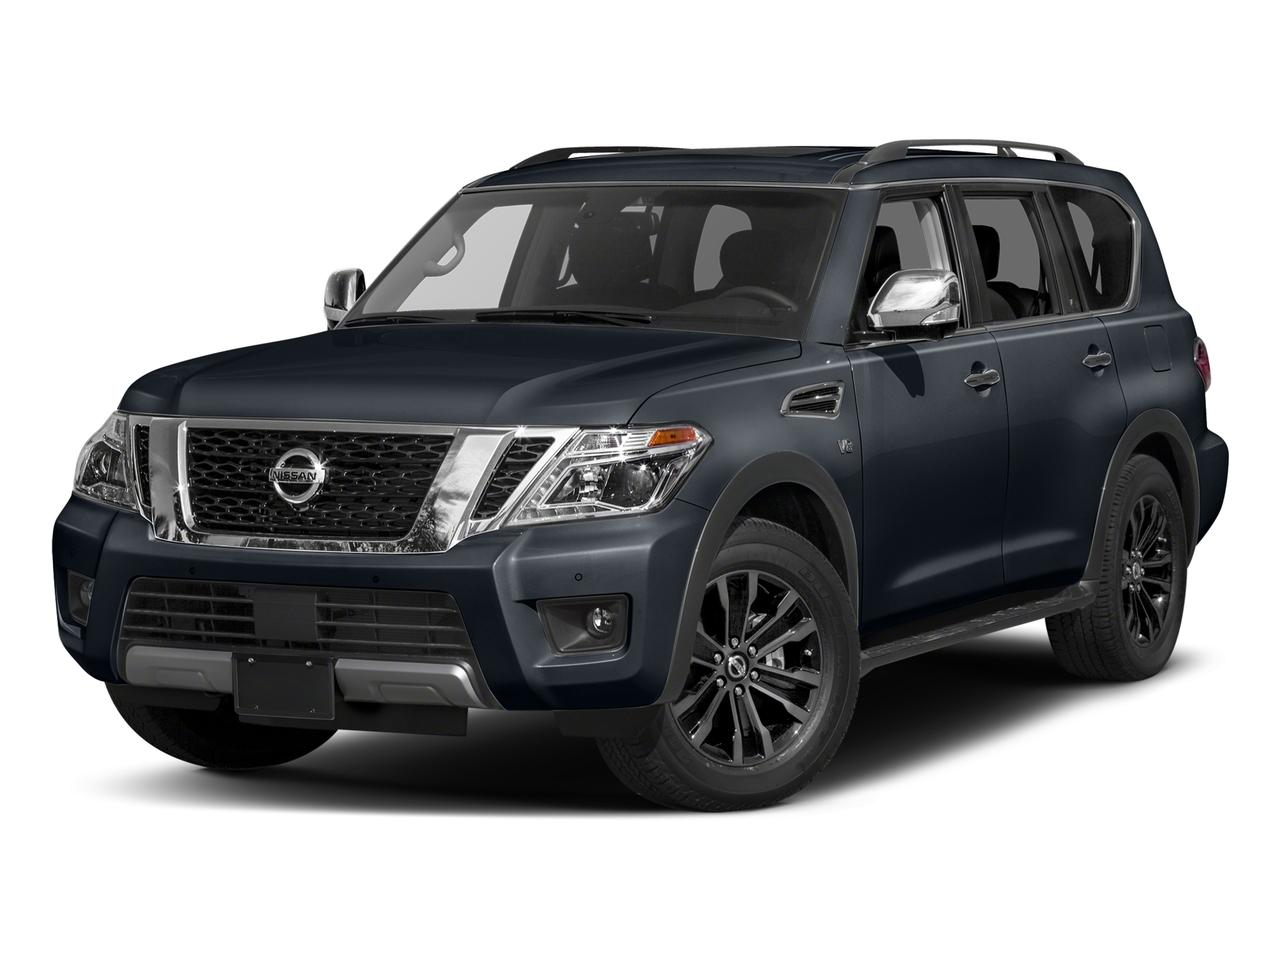 2017 Nissan Armada Vehicle Photo in Frisco, TX 75035